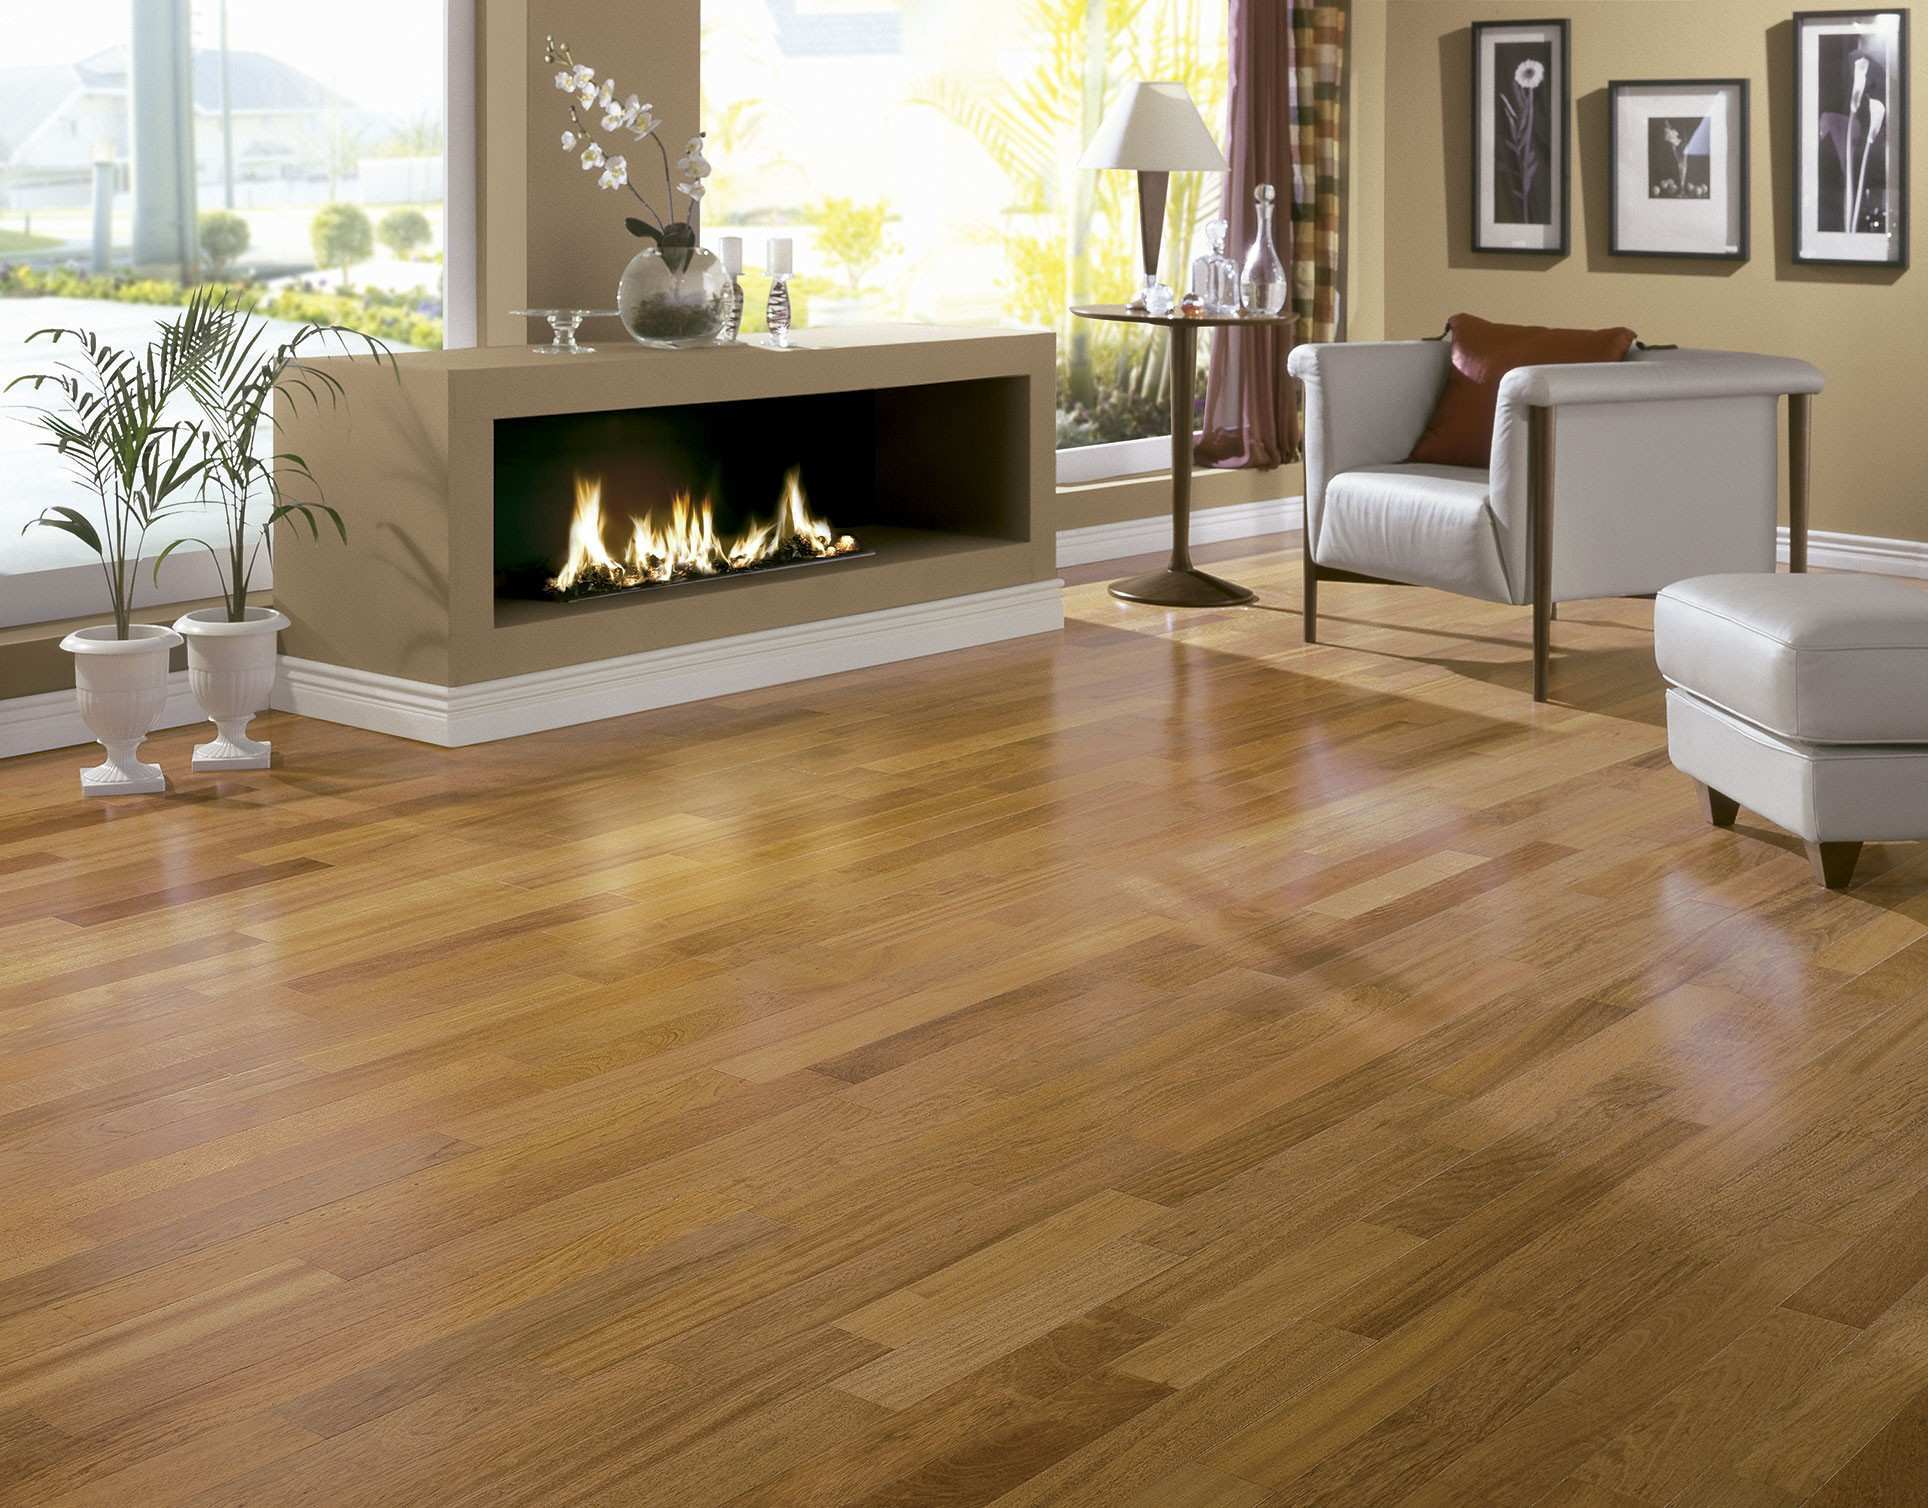 Engaging Discount Hardwood Flooring 5 Where To Buy Inspirational 0d